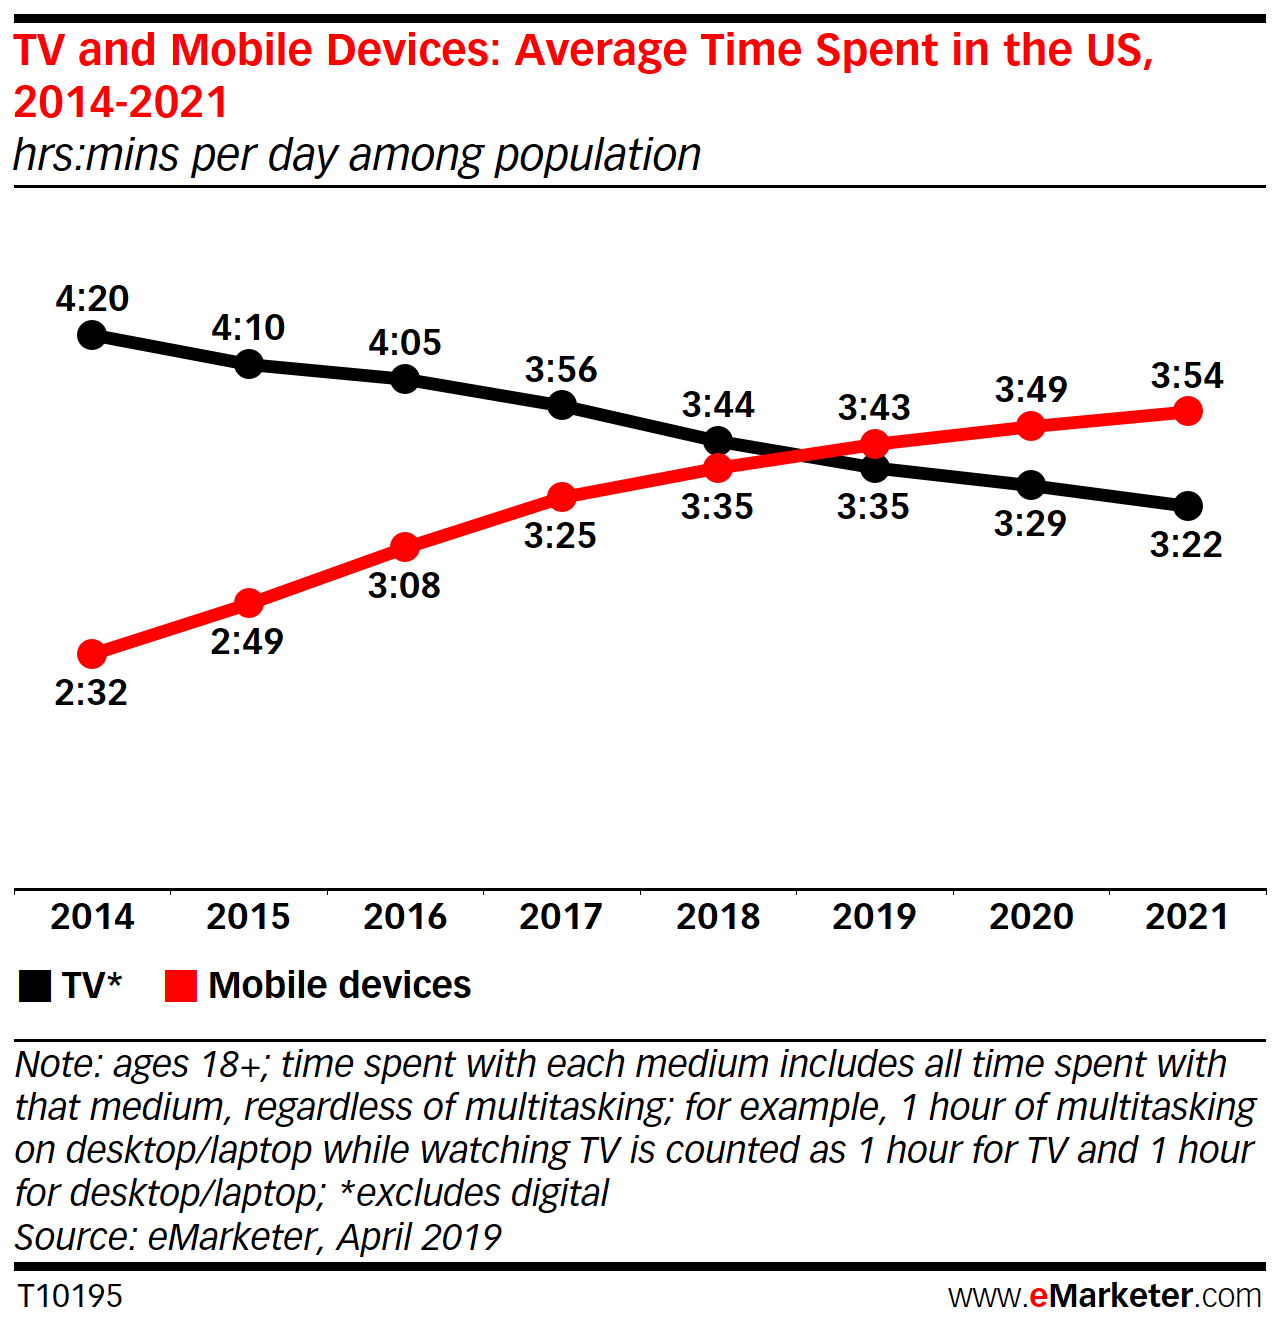 Average Time Spent on TV & Mobile Devices